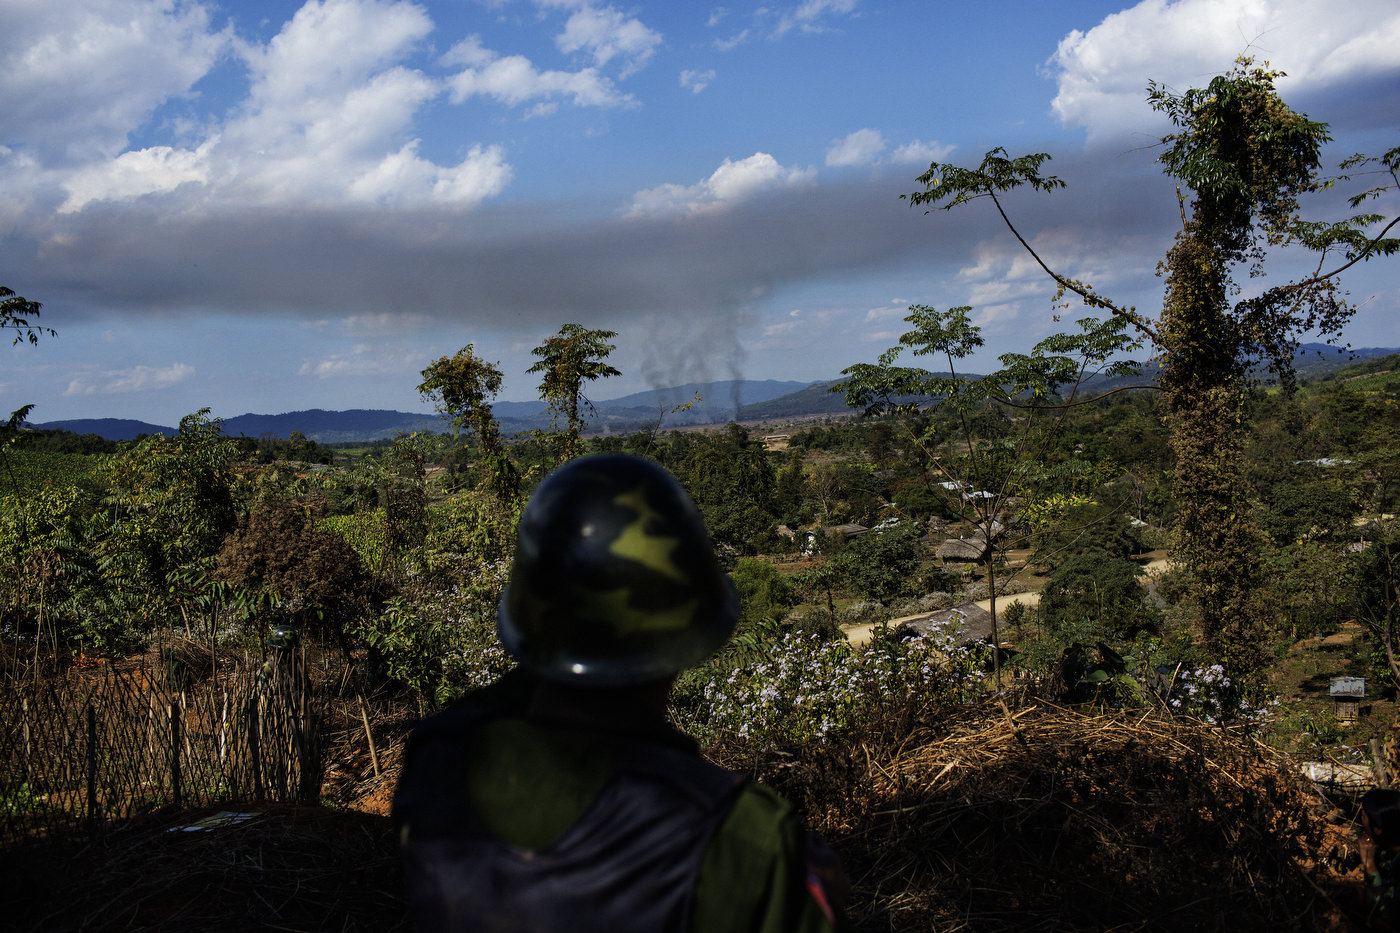 A KIA soldier looks at the shelling by Burmese heavy artillery of the small town of Namsangyang in Kachin State in northern Myanmar.